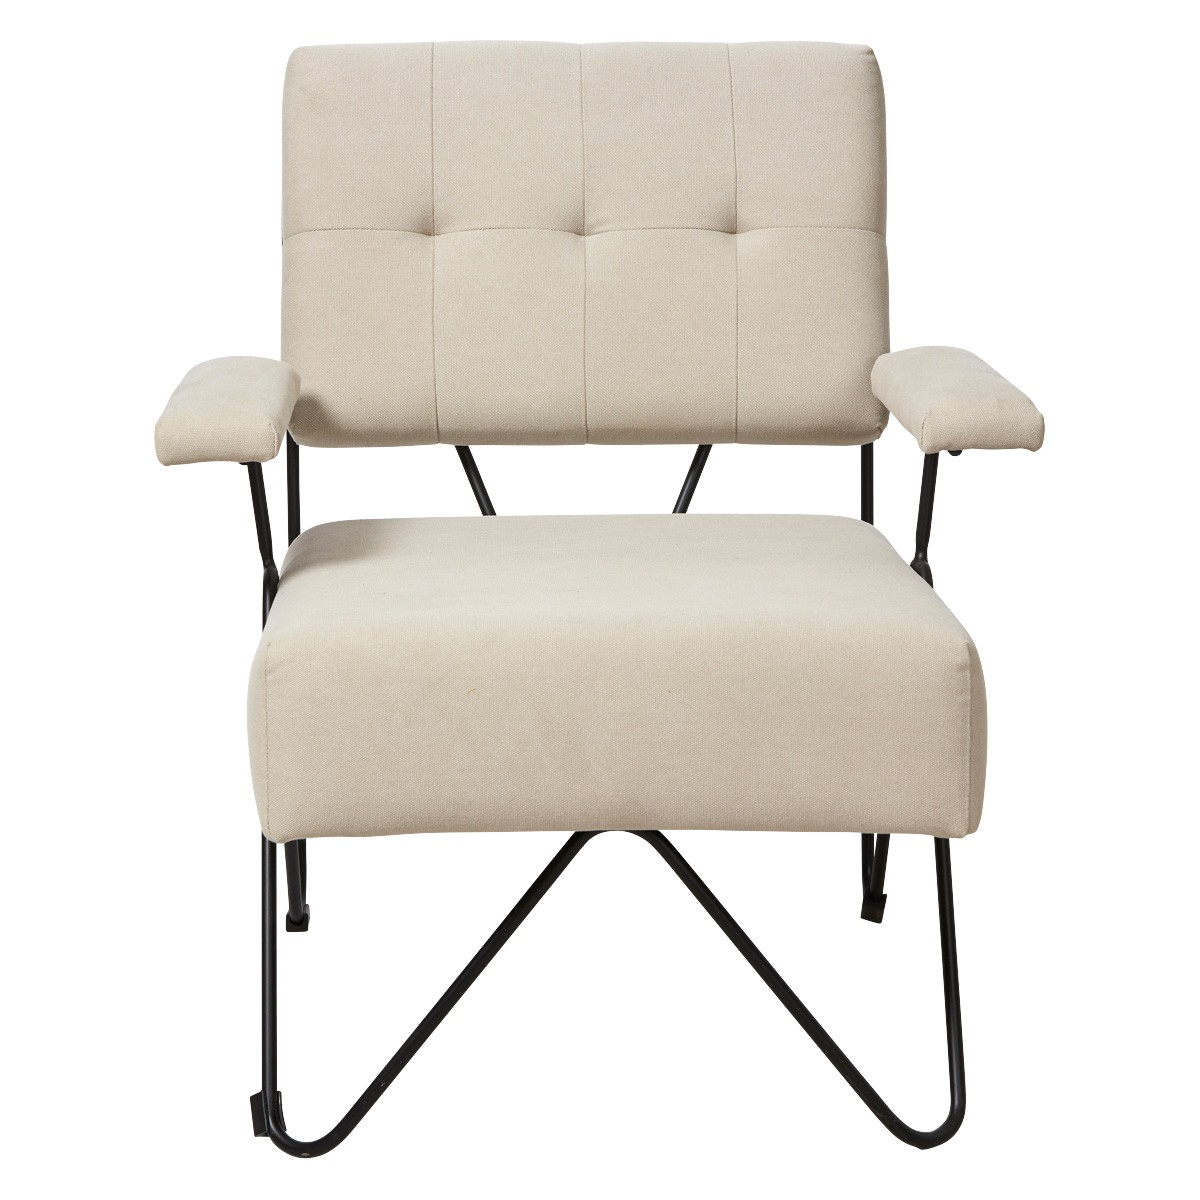 Takumi Cotton Fabric Armchair, Beige